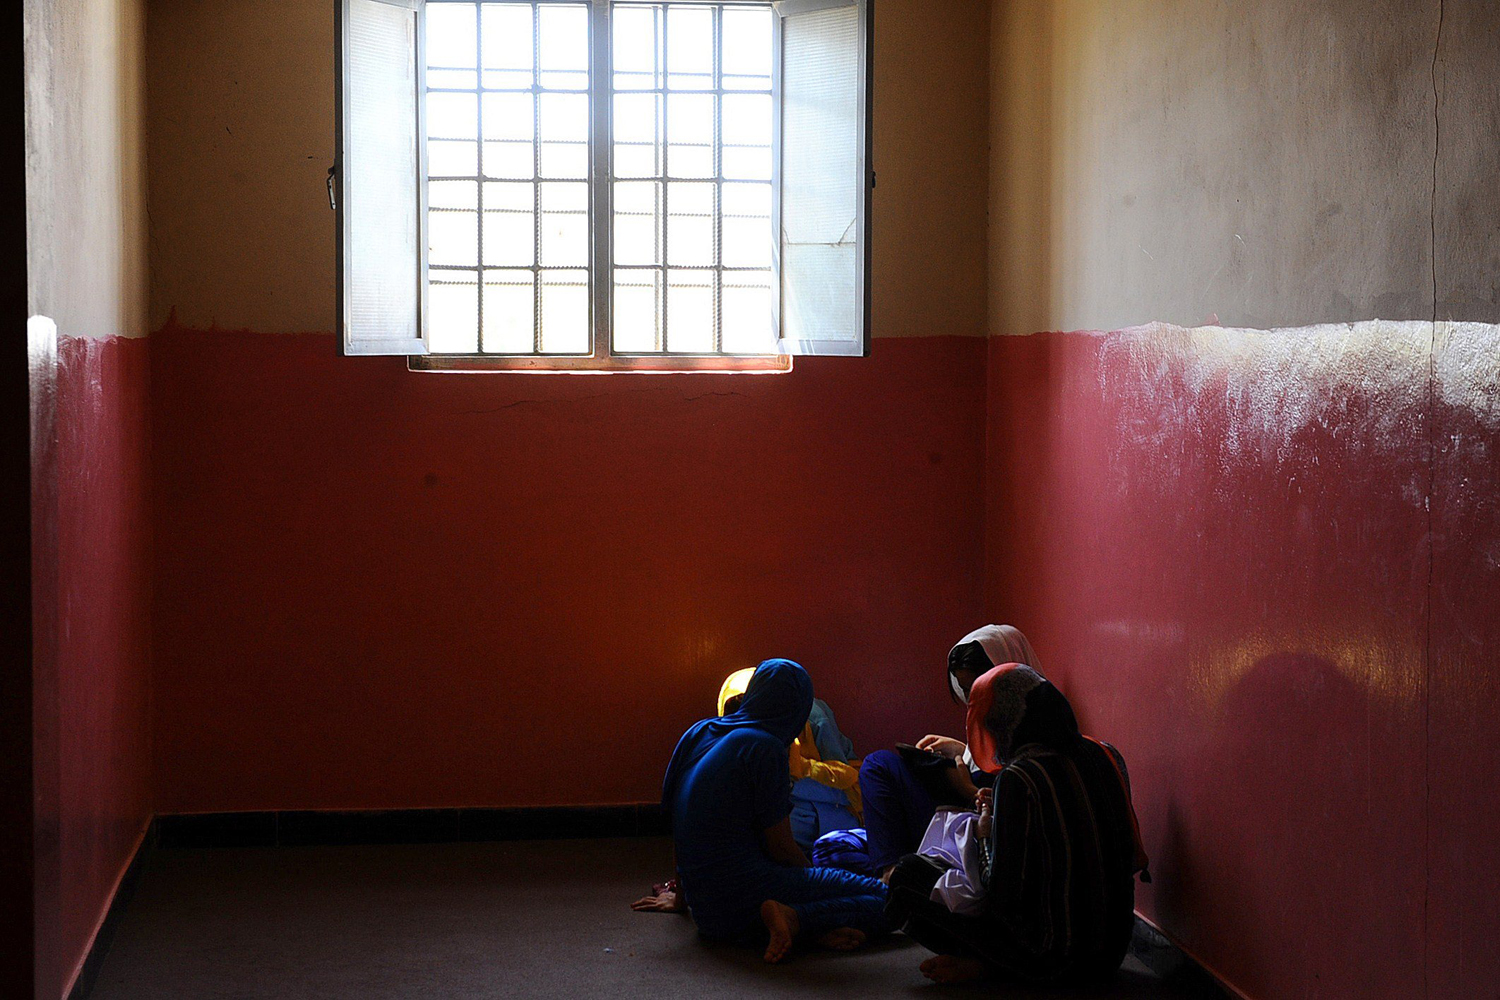 Aug. 27, 2014. Female Afghan prisoners gather in a group inside the female prison in Herat. The facility, which was built by the Italian Provincial Reconstruction Team, holds approximately 140 inmates, some with their children alongside them, whose crimes range from murder, drug trafficking to running away from home.